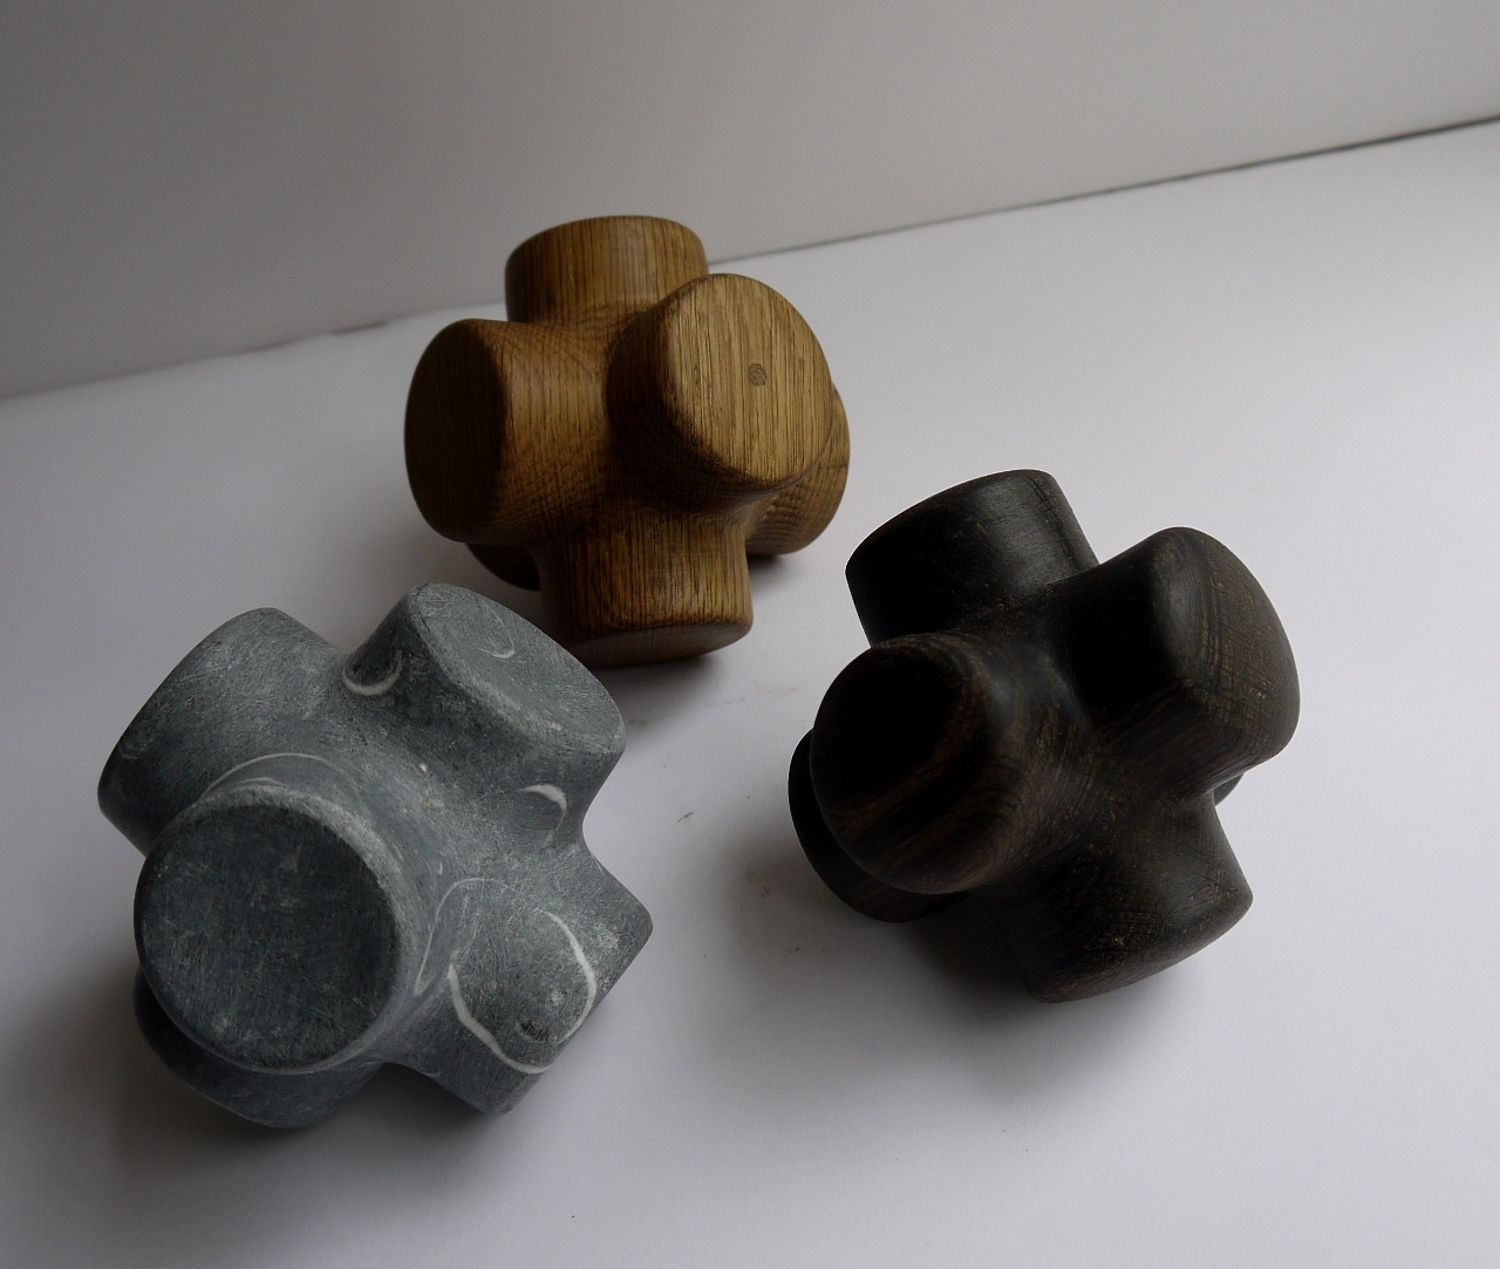 Untitled forms by Eileen Mac Donagh.